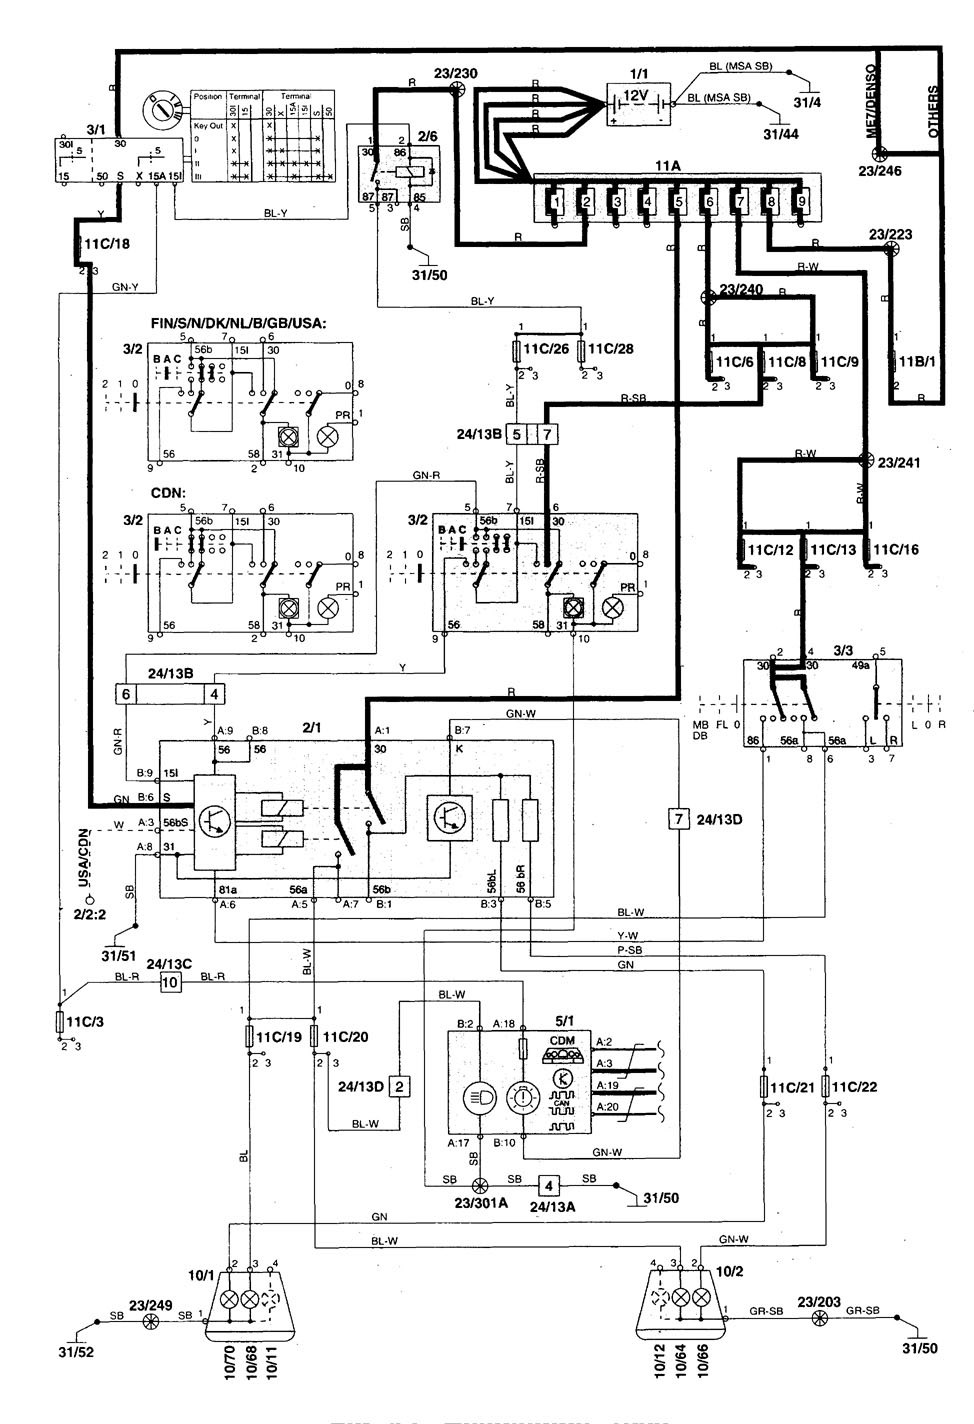 Volvo C Wiring Diagram Headlamps on 2003 Gmc Sierra Wiring Diagram